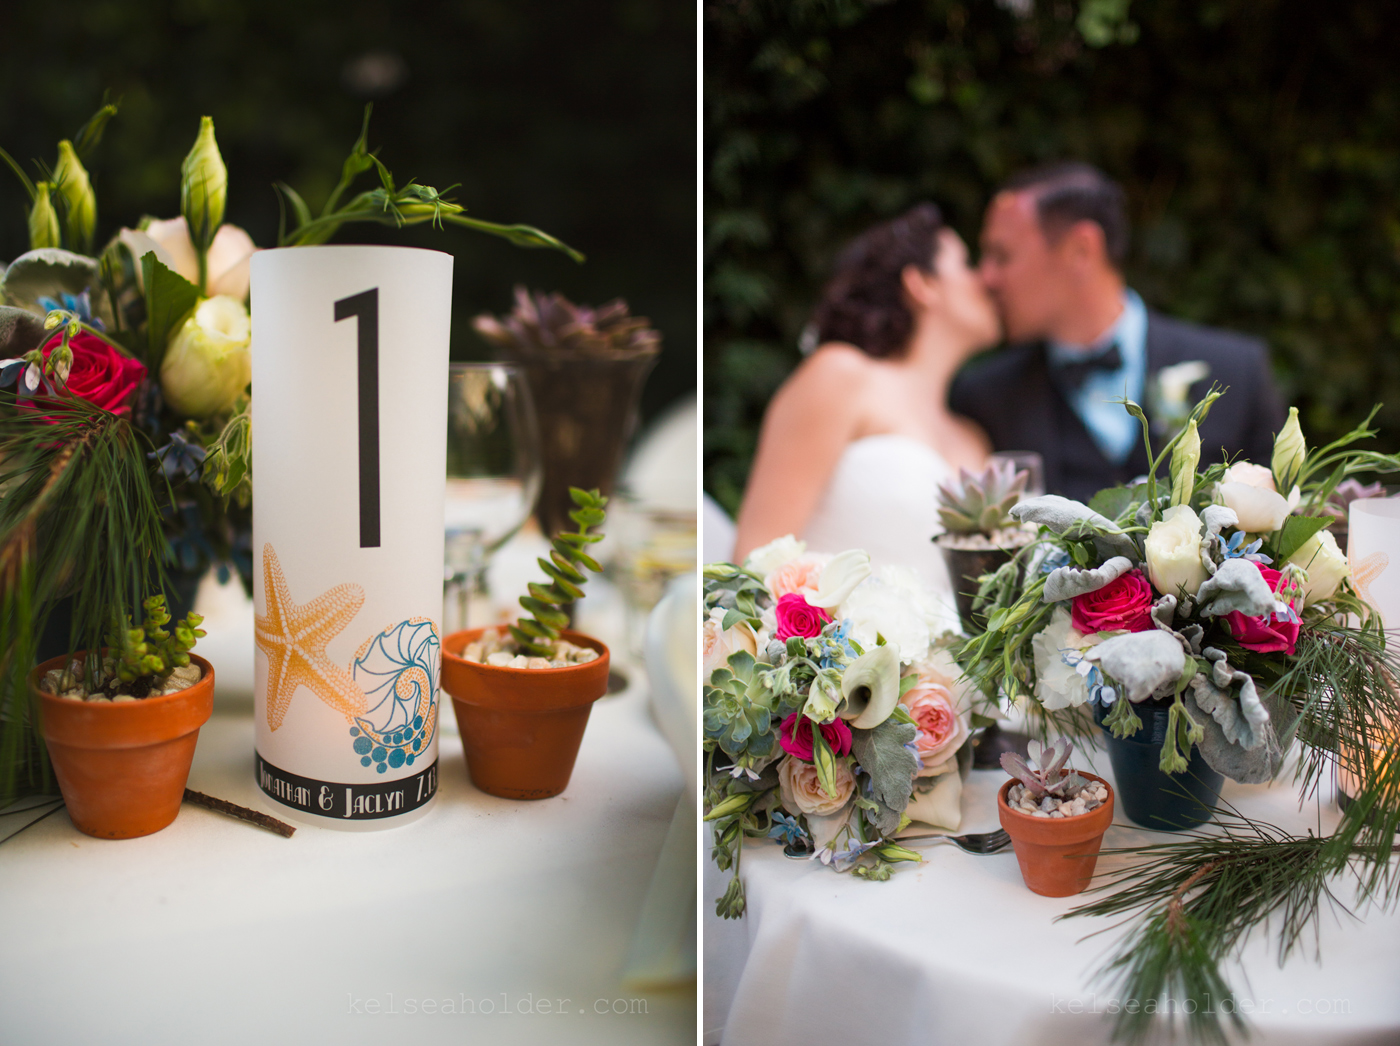 kelsea_holder_eco_outdoor_california_wedding061